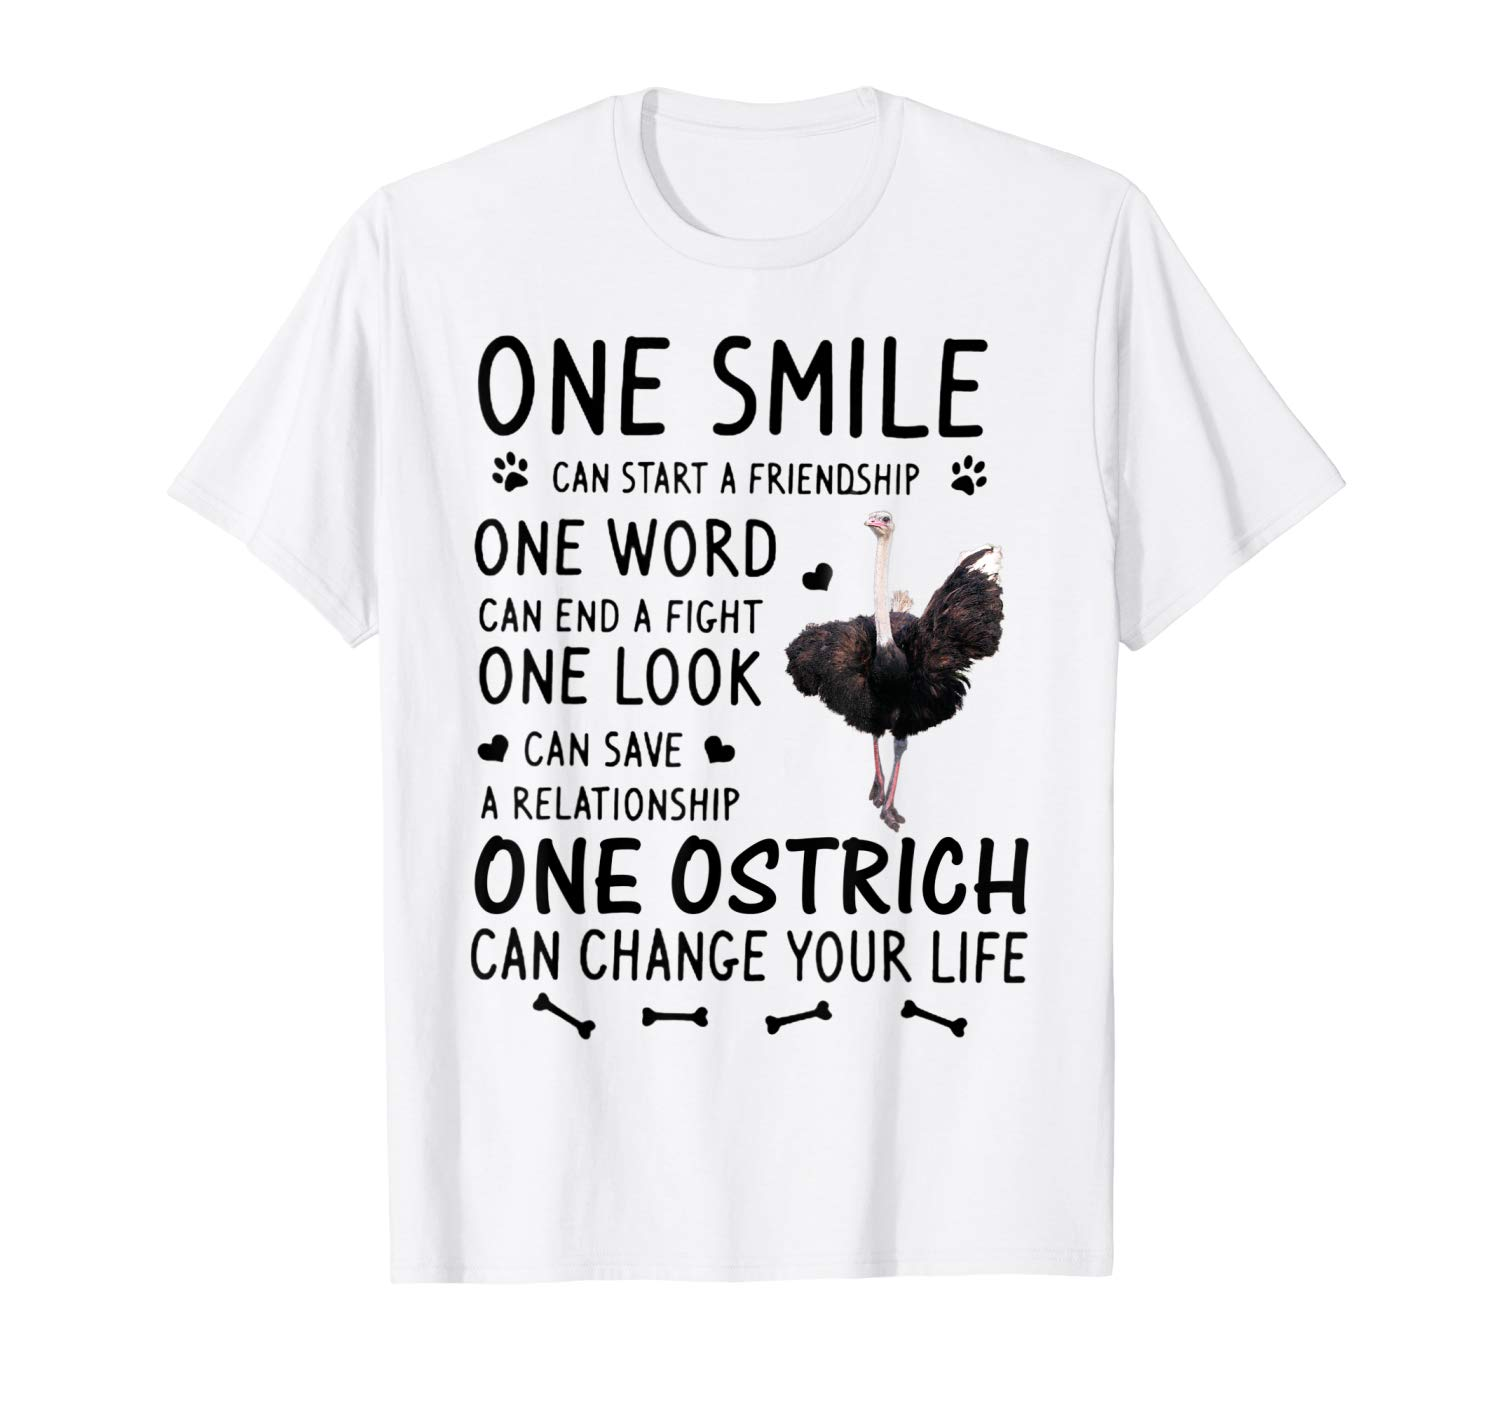 One Ostrich Can Change Your Life Shirt